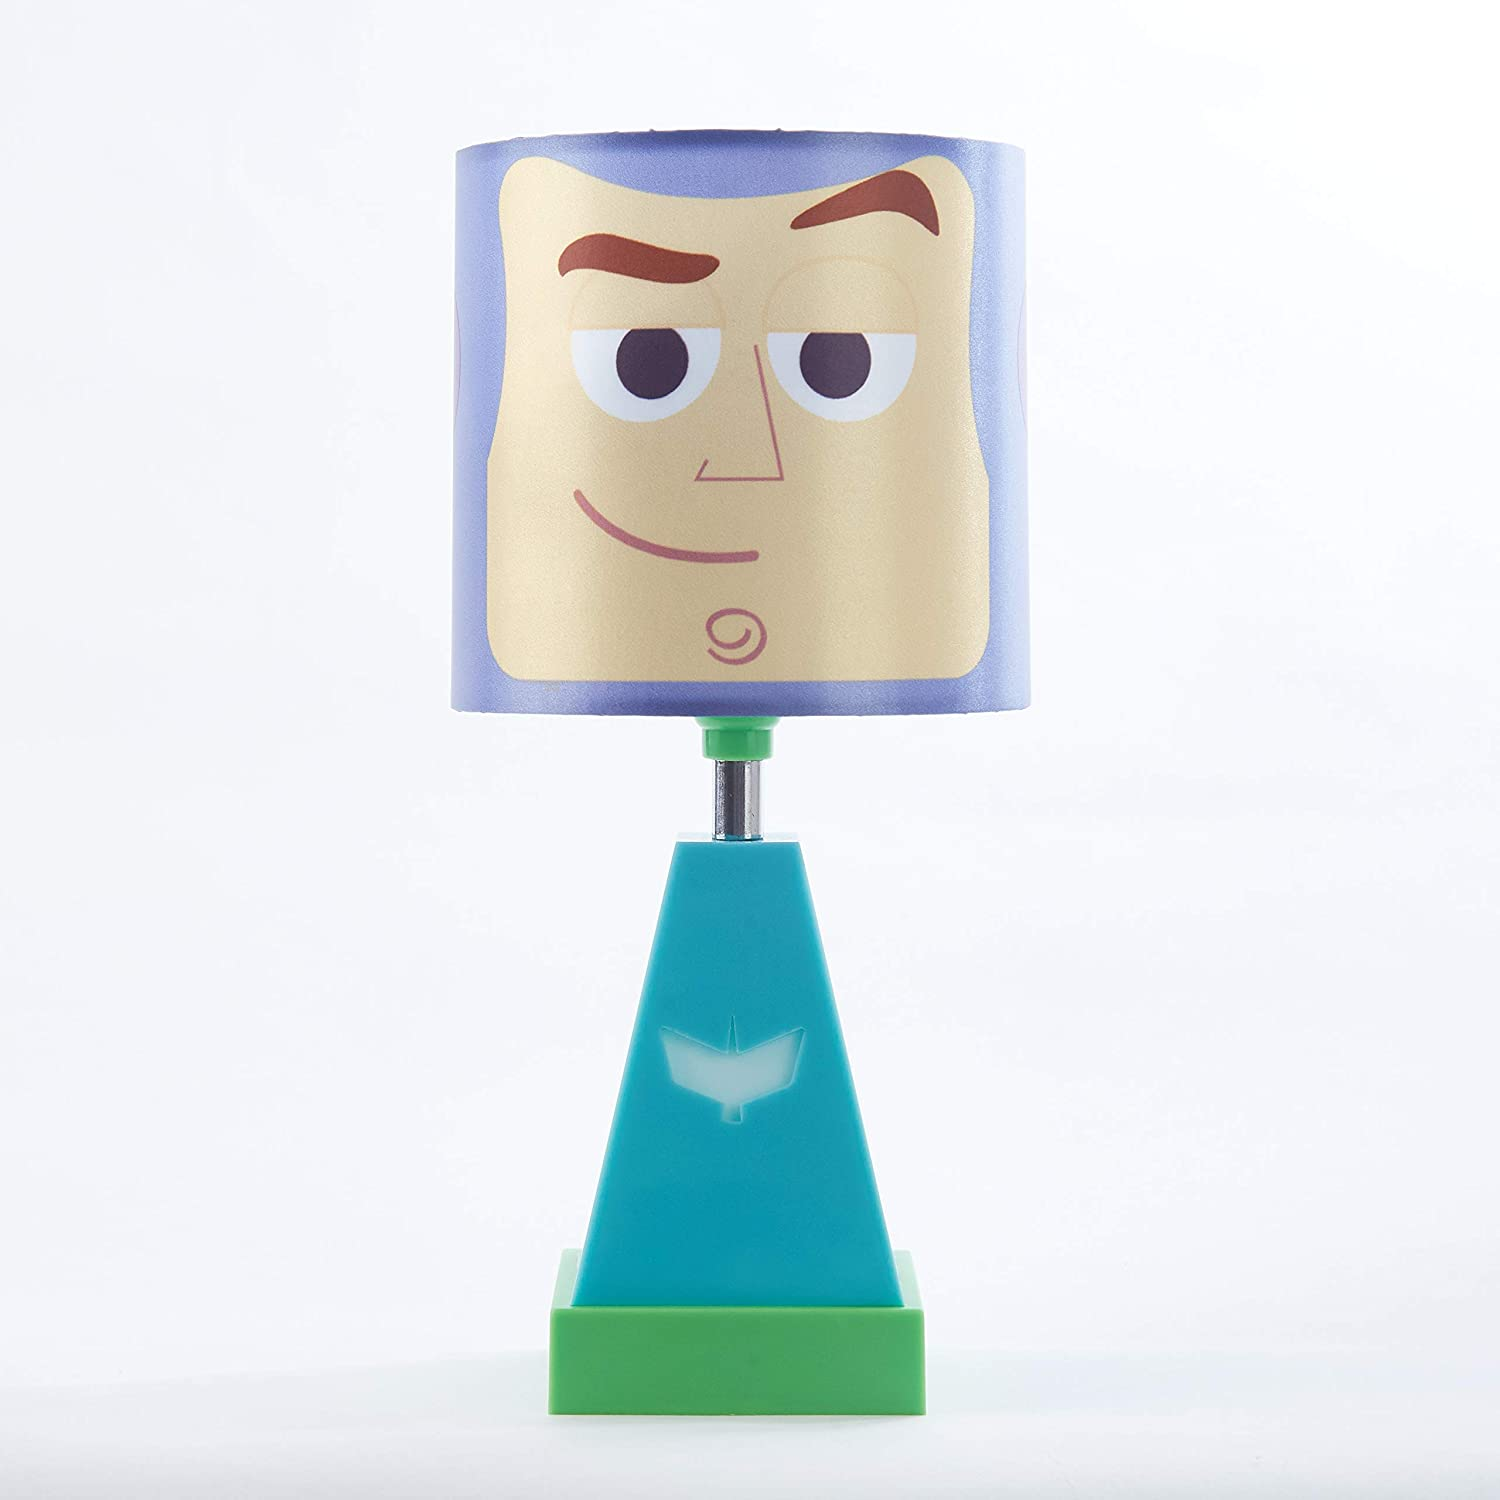 Disney Toy Story 4 2 in 1 Lamp, Blue